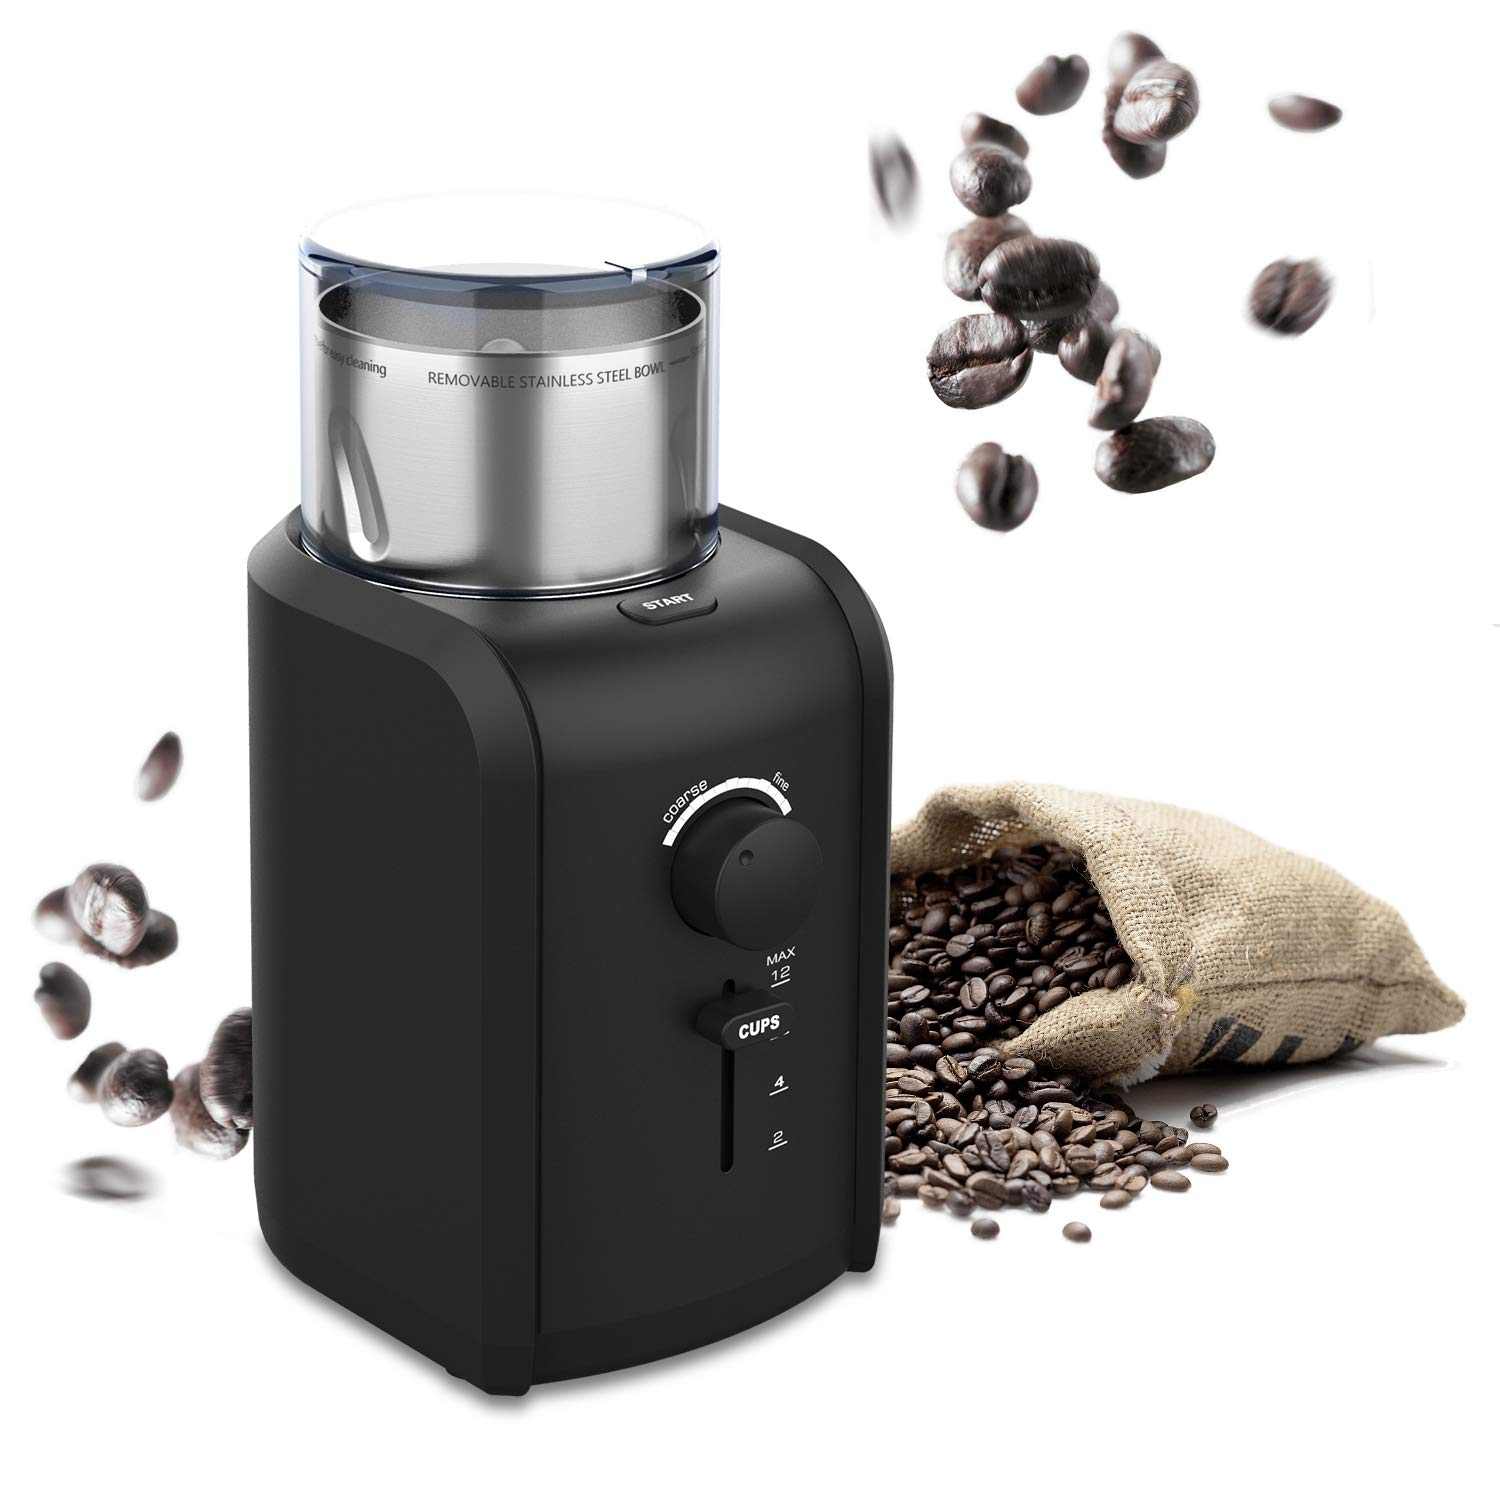 TTLIFE Electric Coffee Bean Grinder, Professional High Power motor with Grind Size, Cup Selection, Removable Stainless Steel Cup for easy cleaning, Cord Storage System, Herbs & Grains, Grinds Nuts, Black